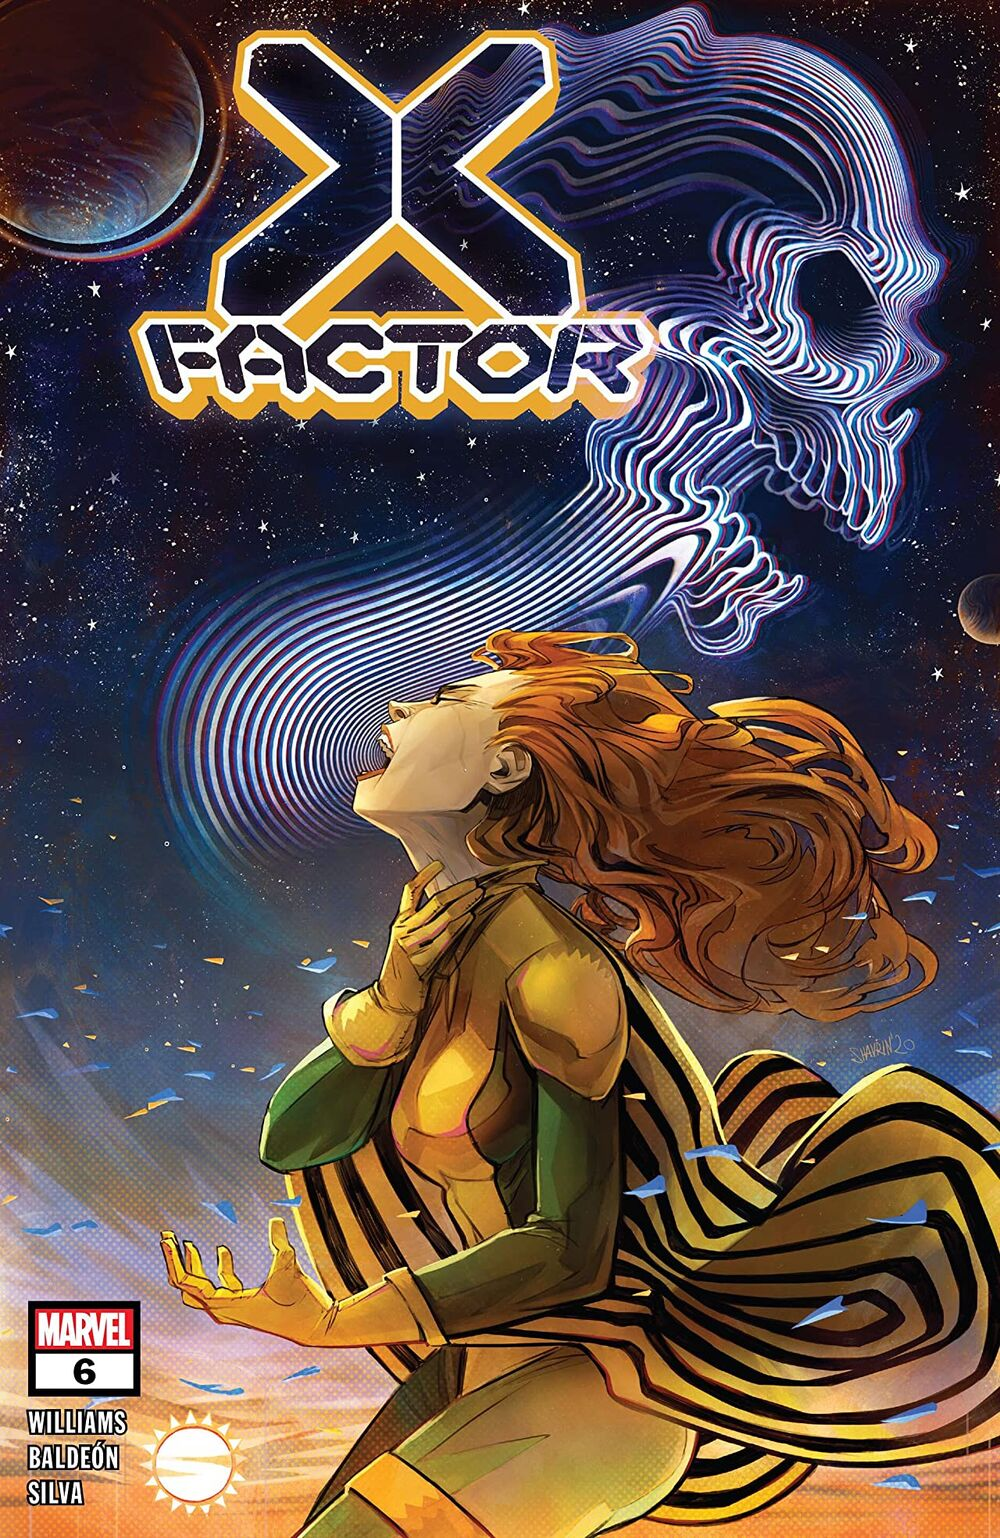 X-Factor #6 – There's A Garden Full Of DeadBodies!